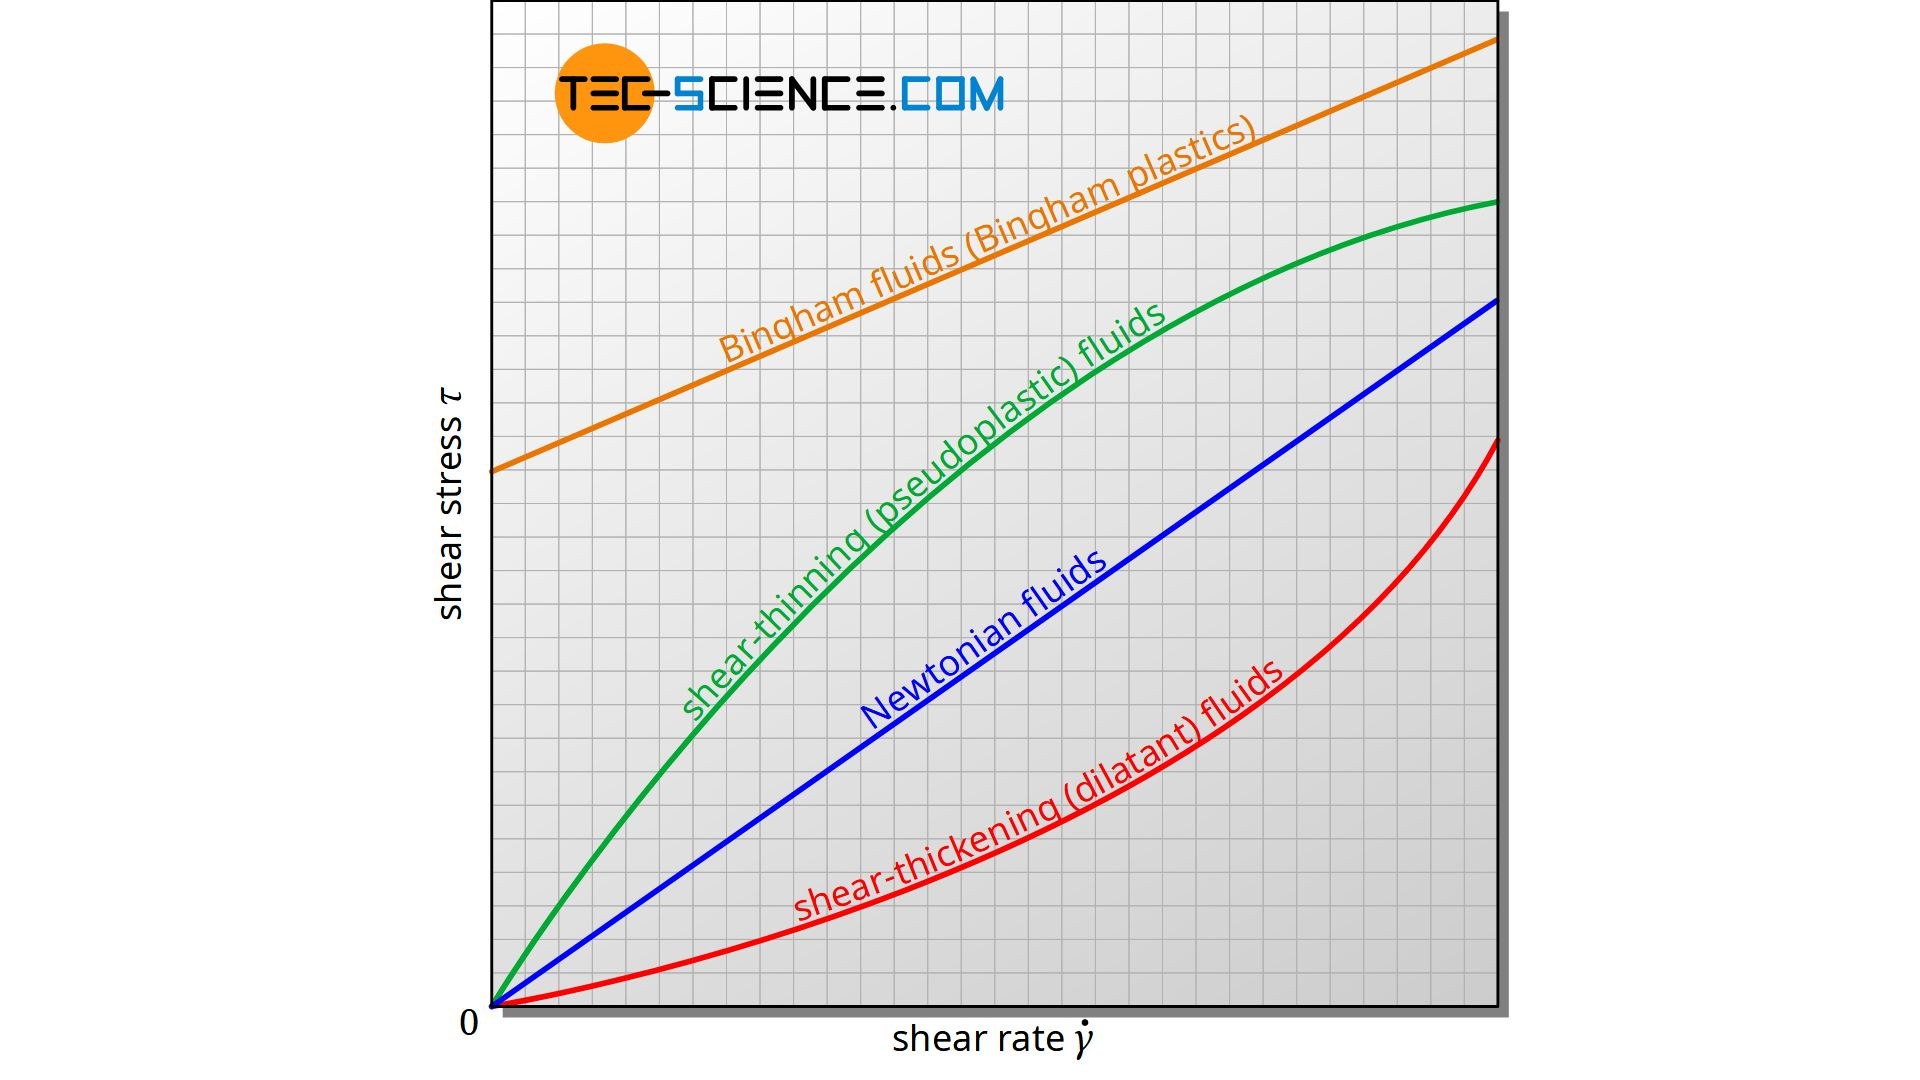 Shear stress as a function of shear rate for different types of fluids